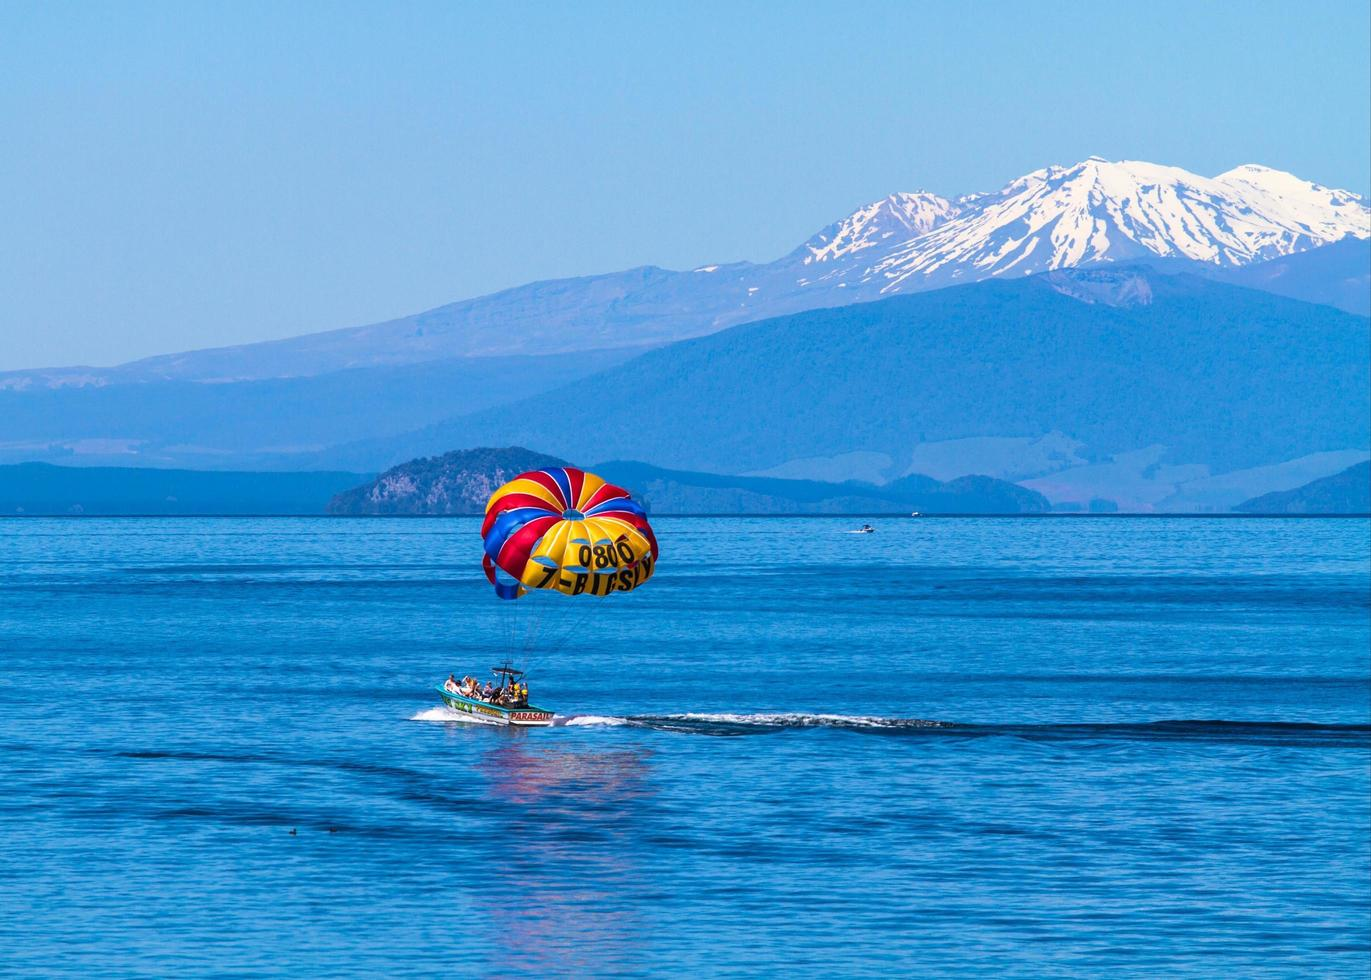 Lake Taupo, New Zealand, 2020 - A parasailing group riding on a boat near mountains photo